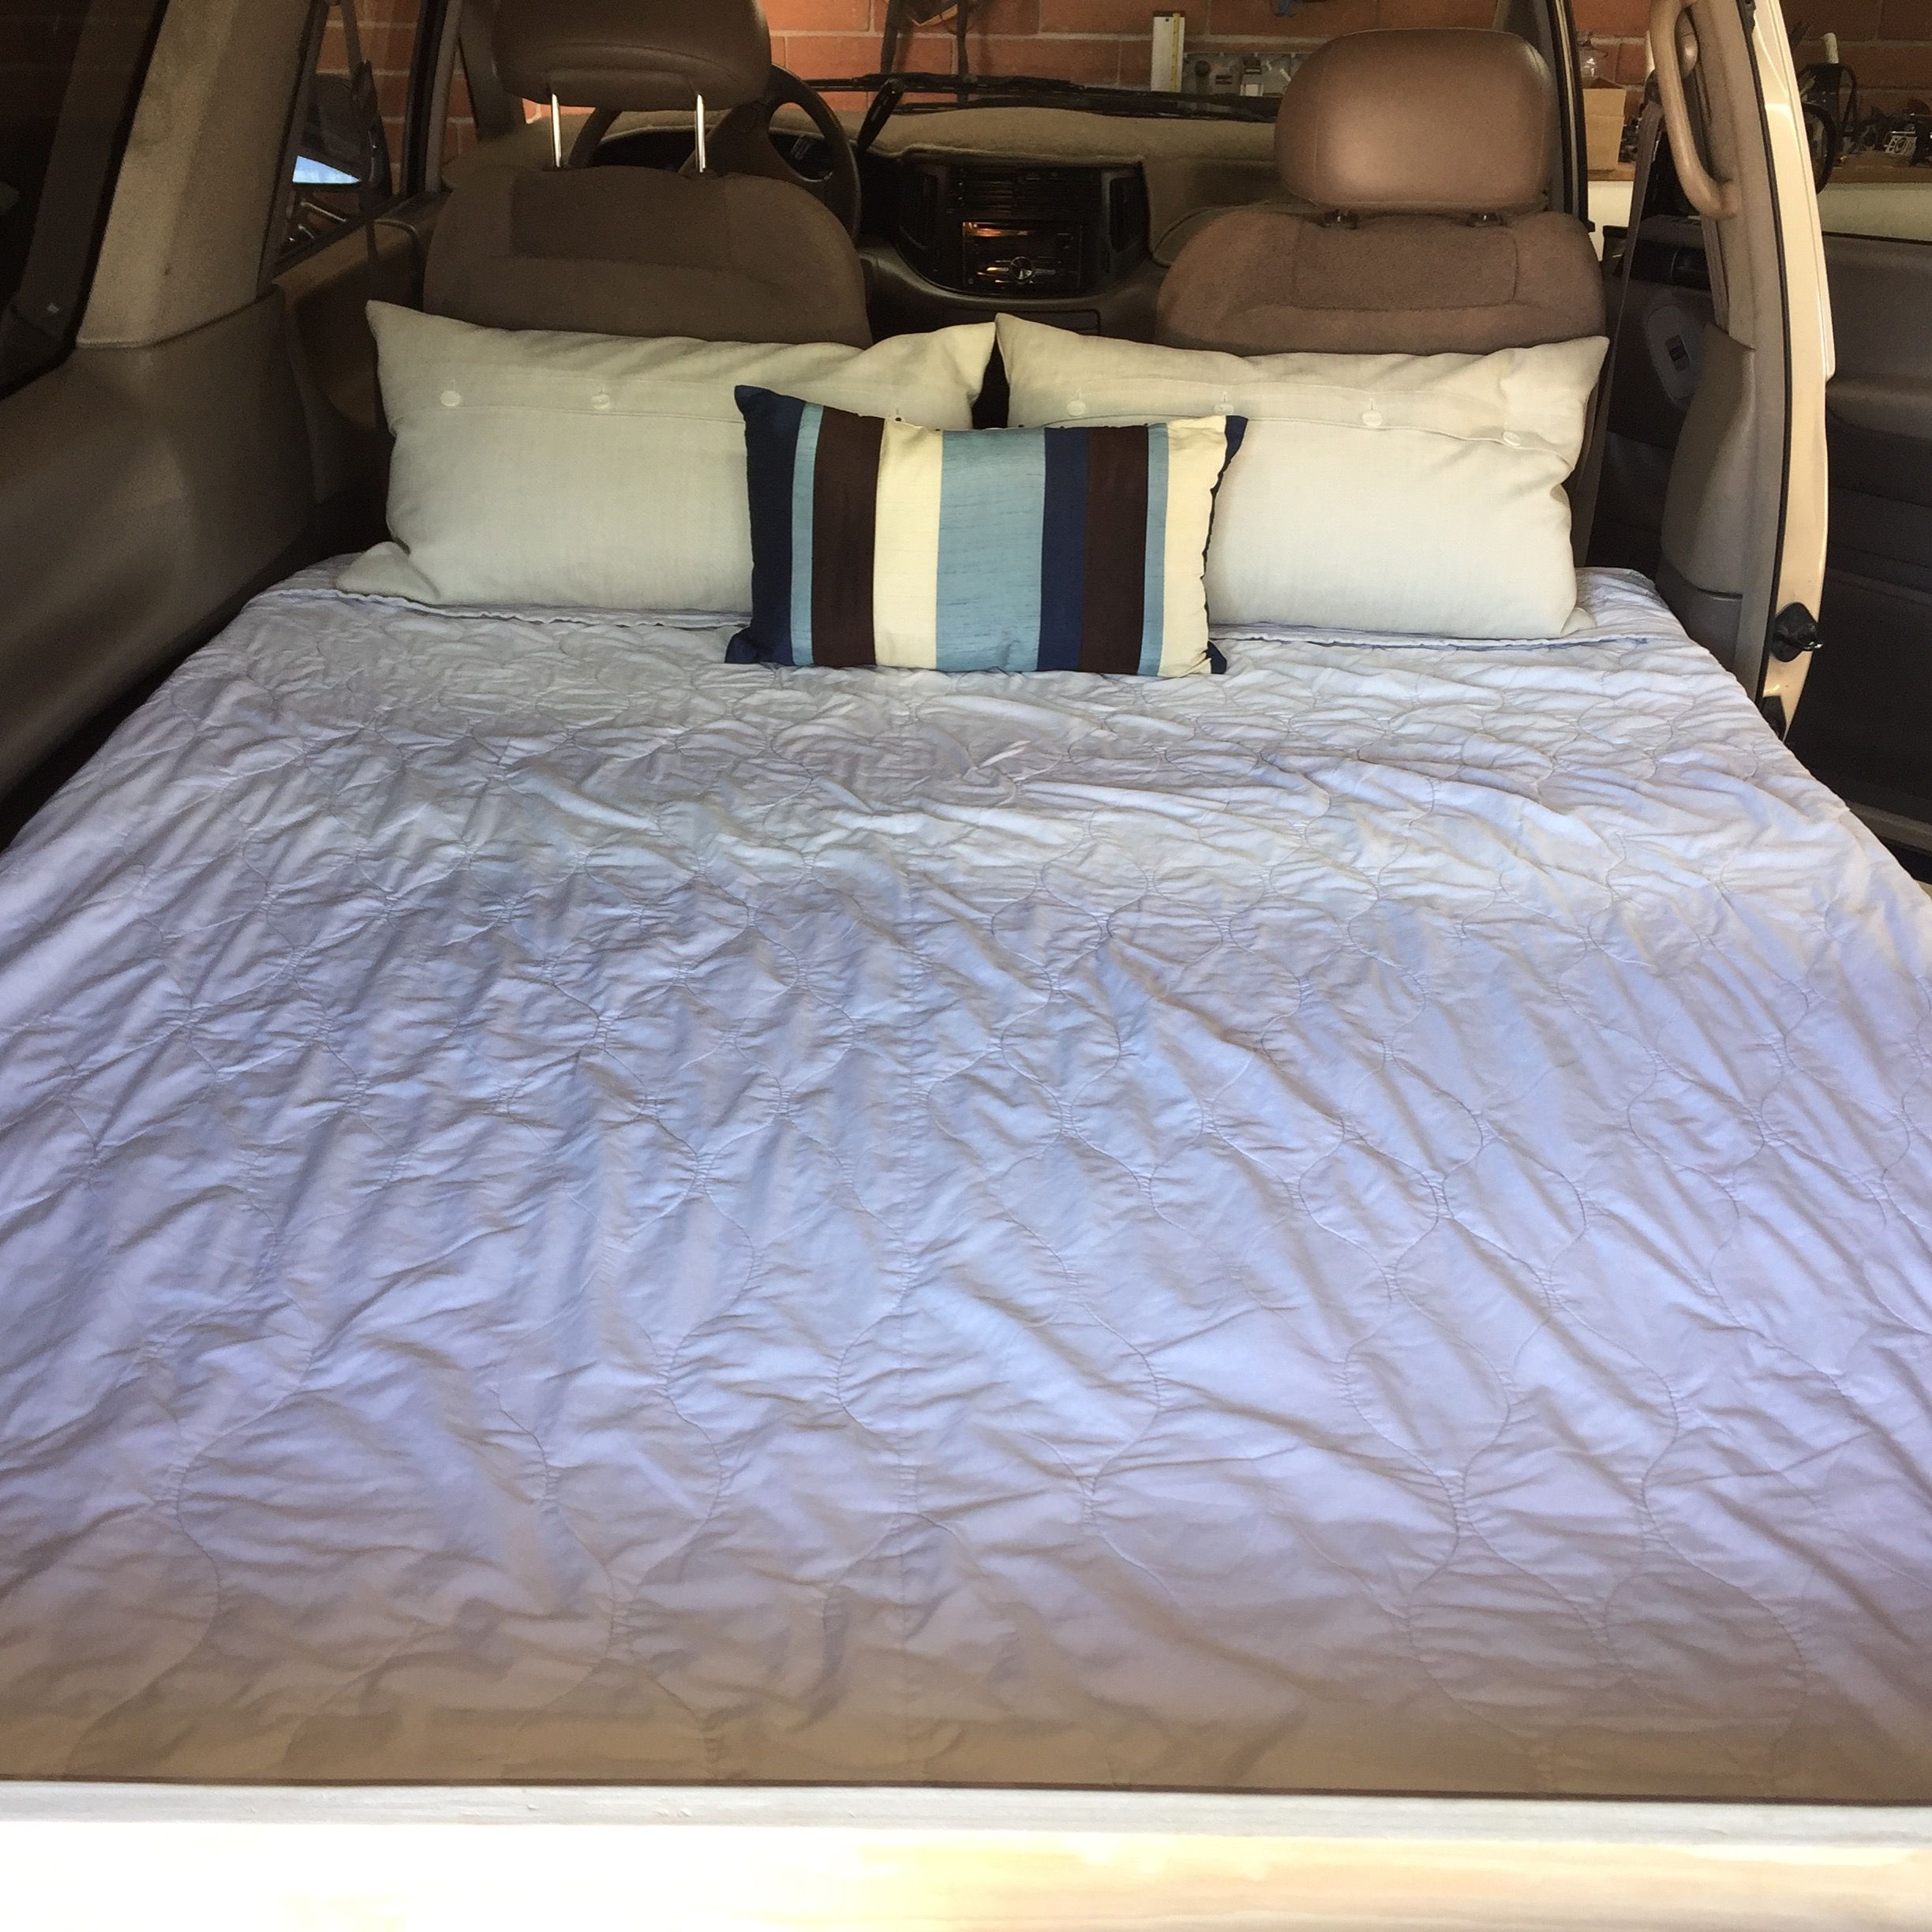 Sofa Bed Ebay Peterborough Toyota Previa Campervan Bed Can T Believe A Queen Bed Fits